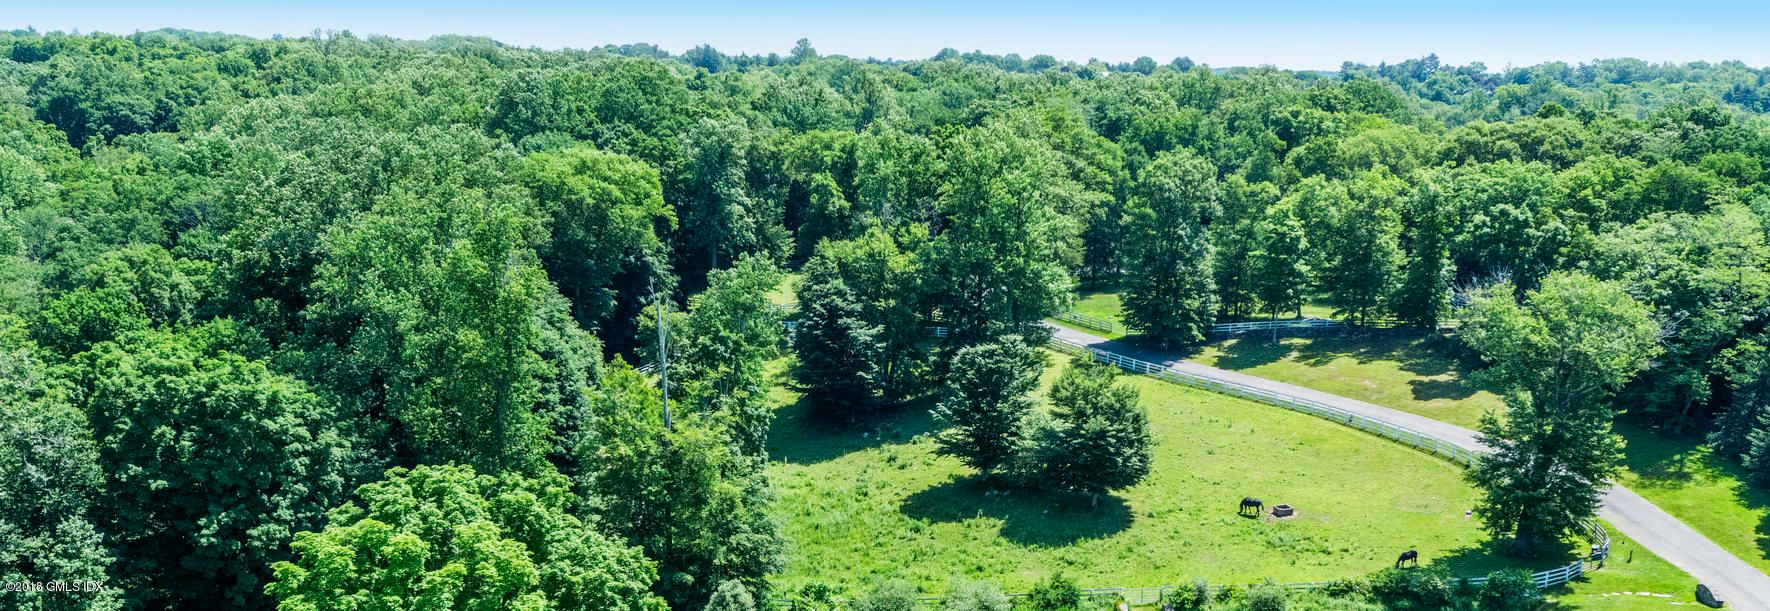 50 Lafrentz - Lot 1 Road - Greenwich, Connecticut